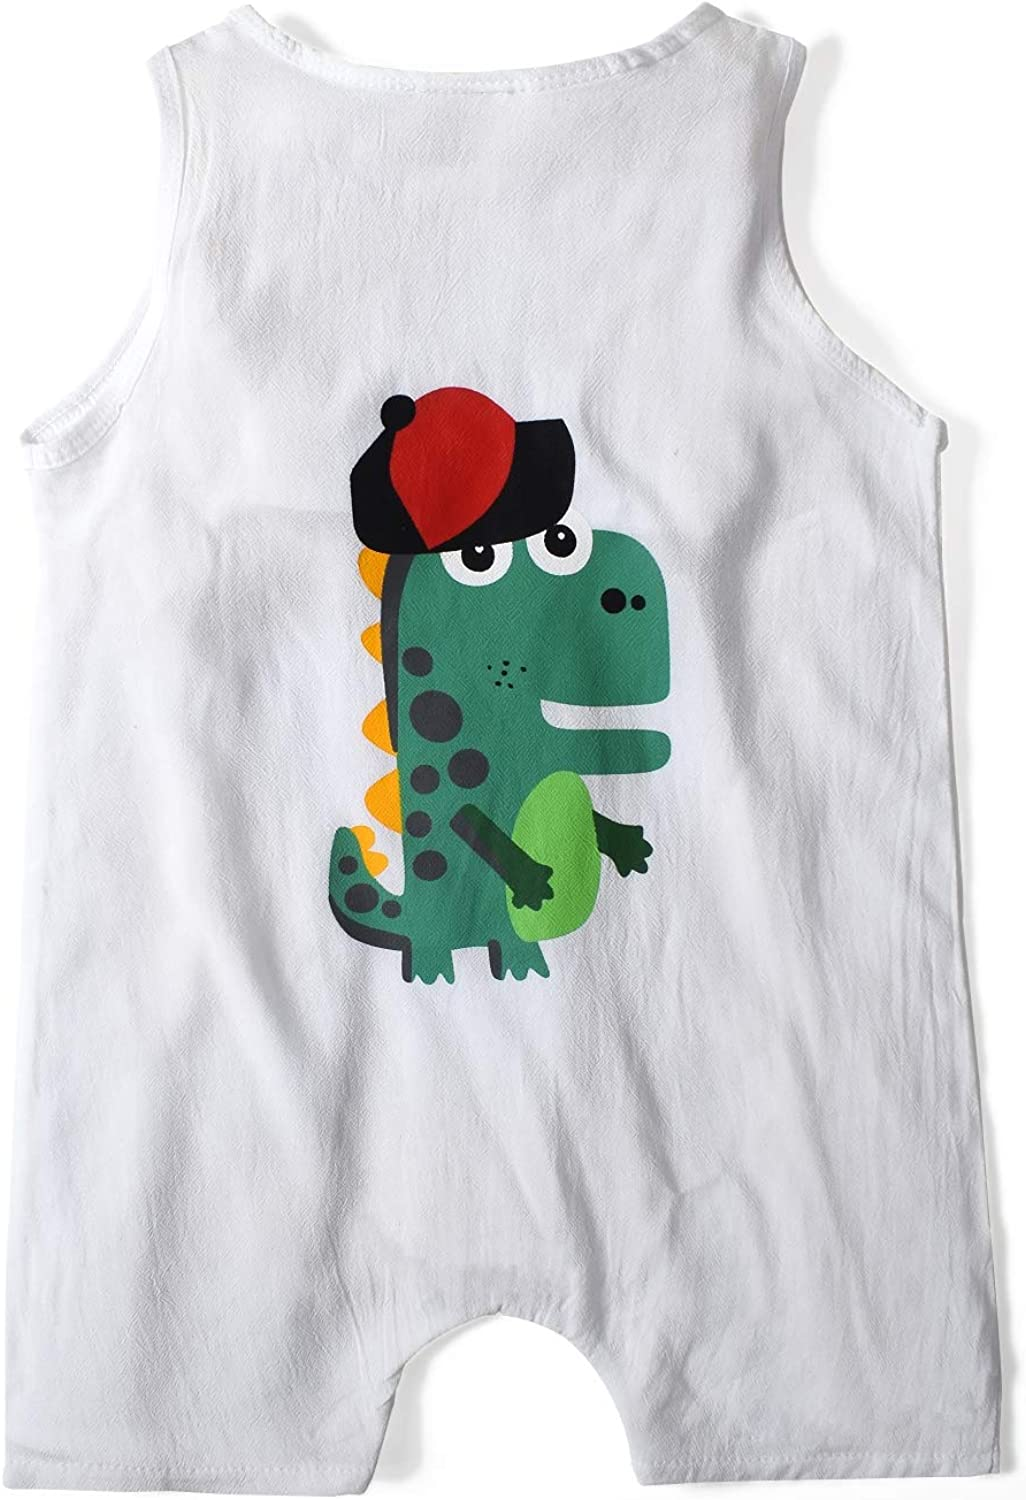 Nwada Baby Boy Clothes 3-24 Months Summer Outfits Cool Sleeveless Short Rompers Kids Dinosaur Printed One-Piece Garment